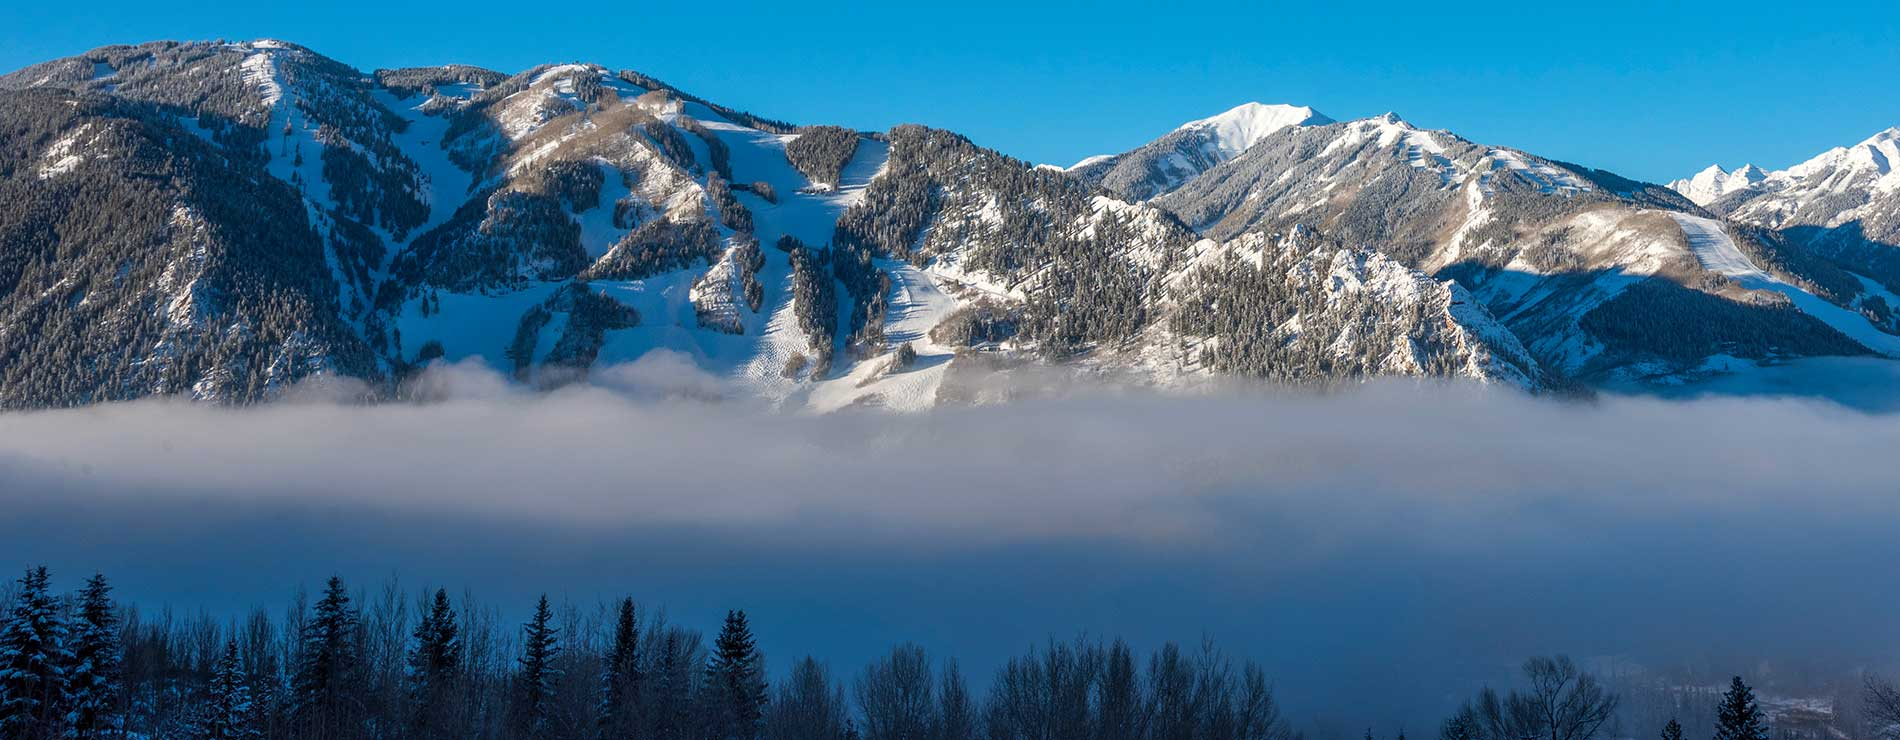 aspen mountain | colorado ski snowboard resort | aspen snowmass